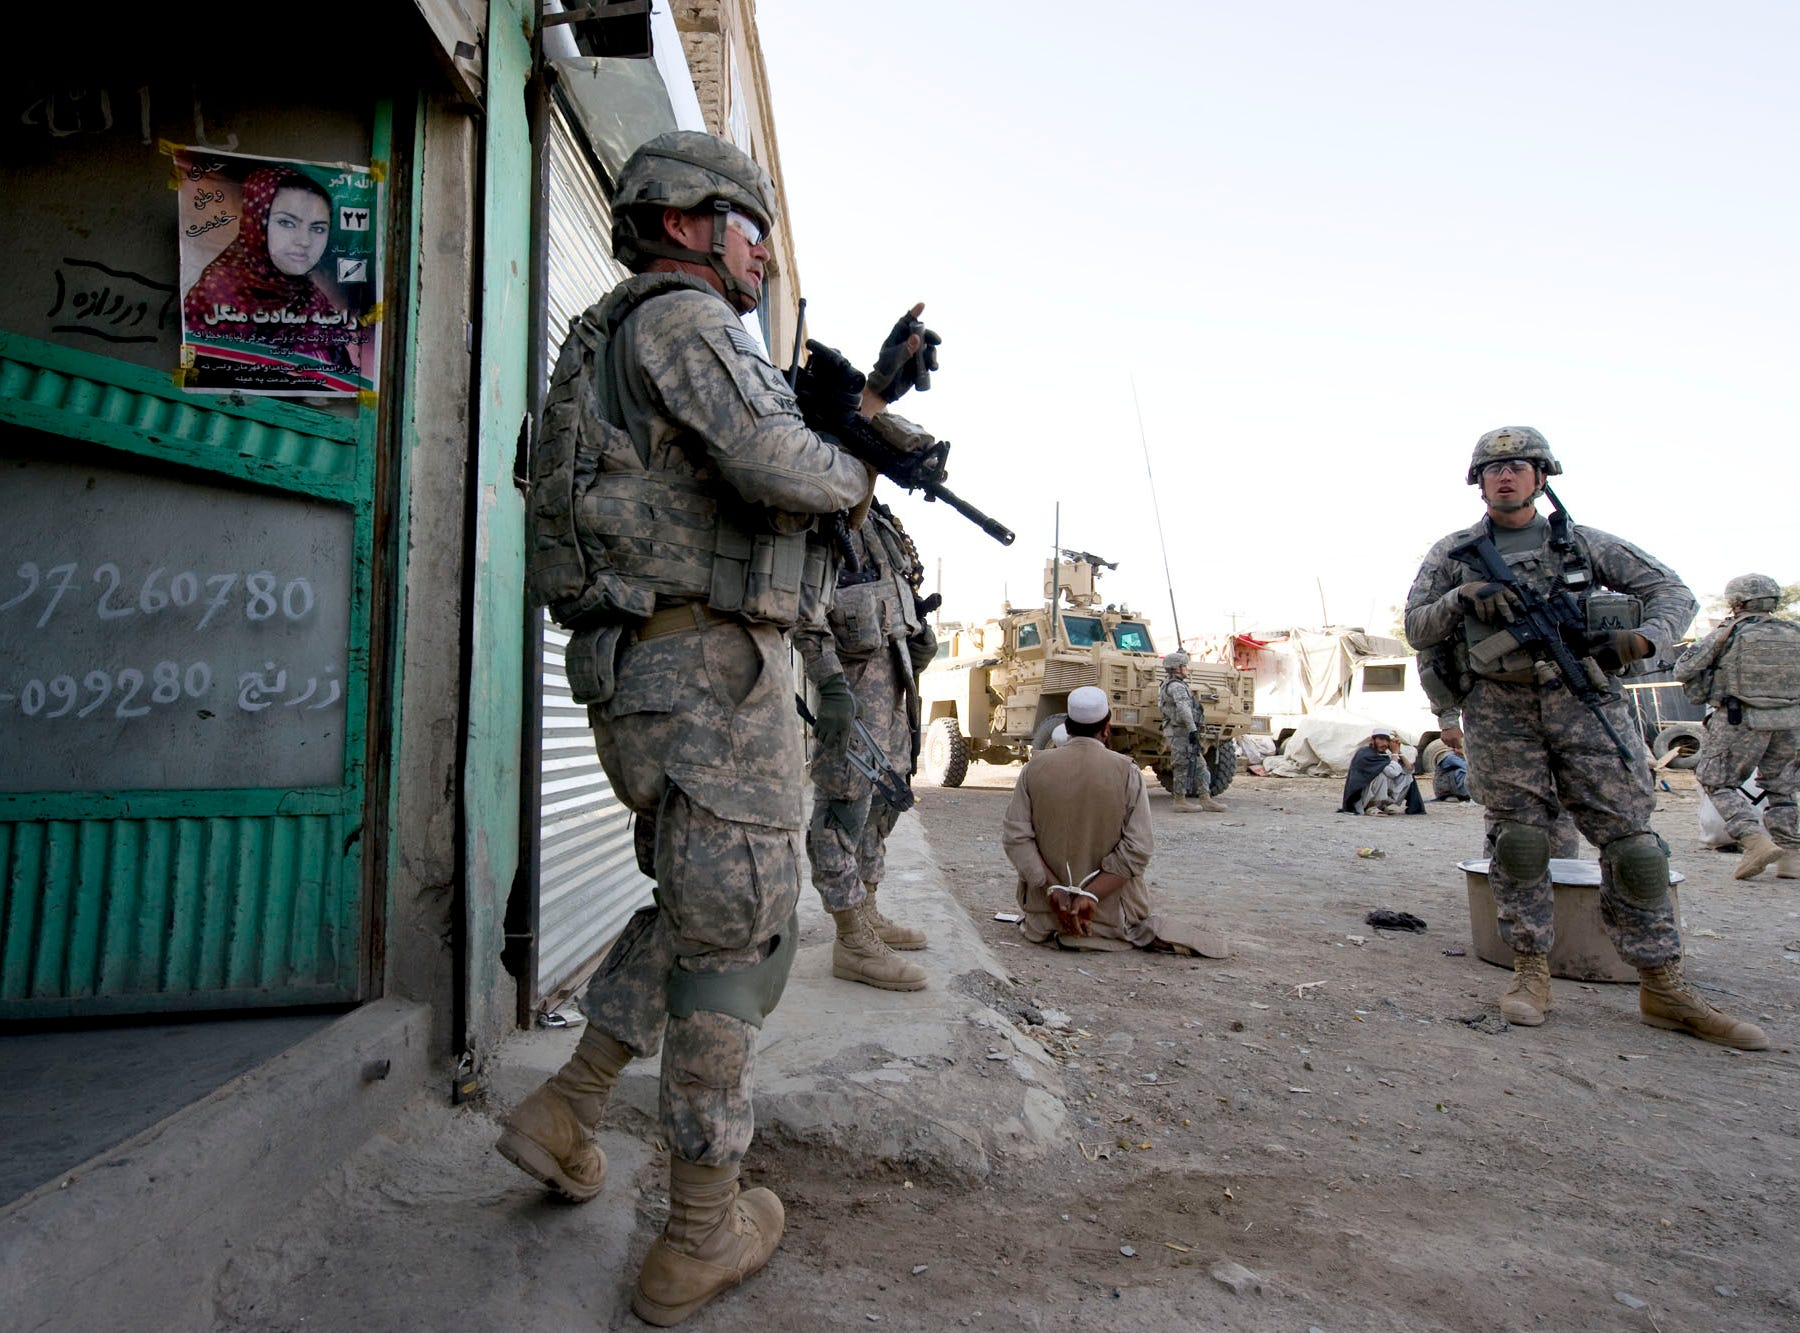 Center, Vermont National Guard Sgt. Donald Stocker of Delta Company emerges from a shop in downtown Gardez in Paktia province, Afghanistan, Friday morning, September 17, 2010, looking for suspected IED and weapons caches. The early-morning raid was delayed several hours after local Afghan police failed to show up on time, leading some soldiers to question weather insurgents were tipped off before the raid.